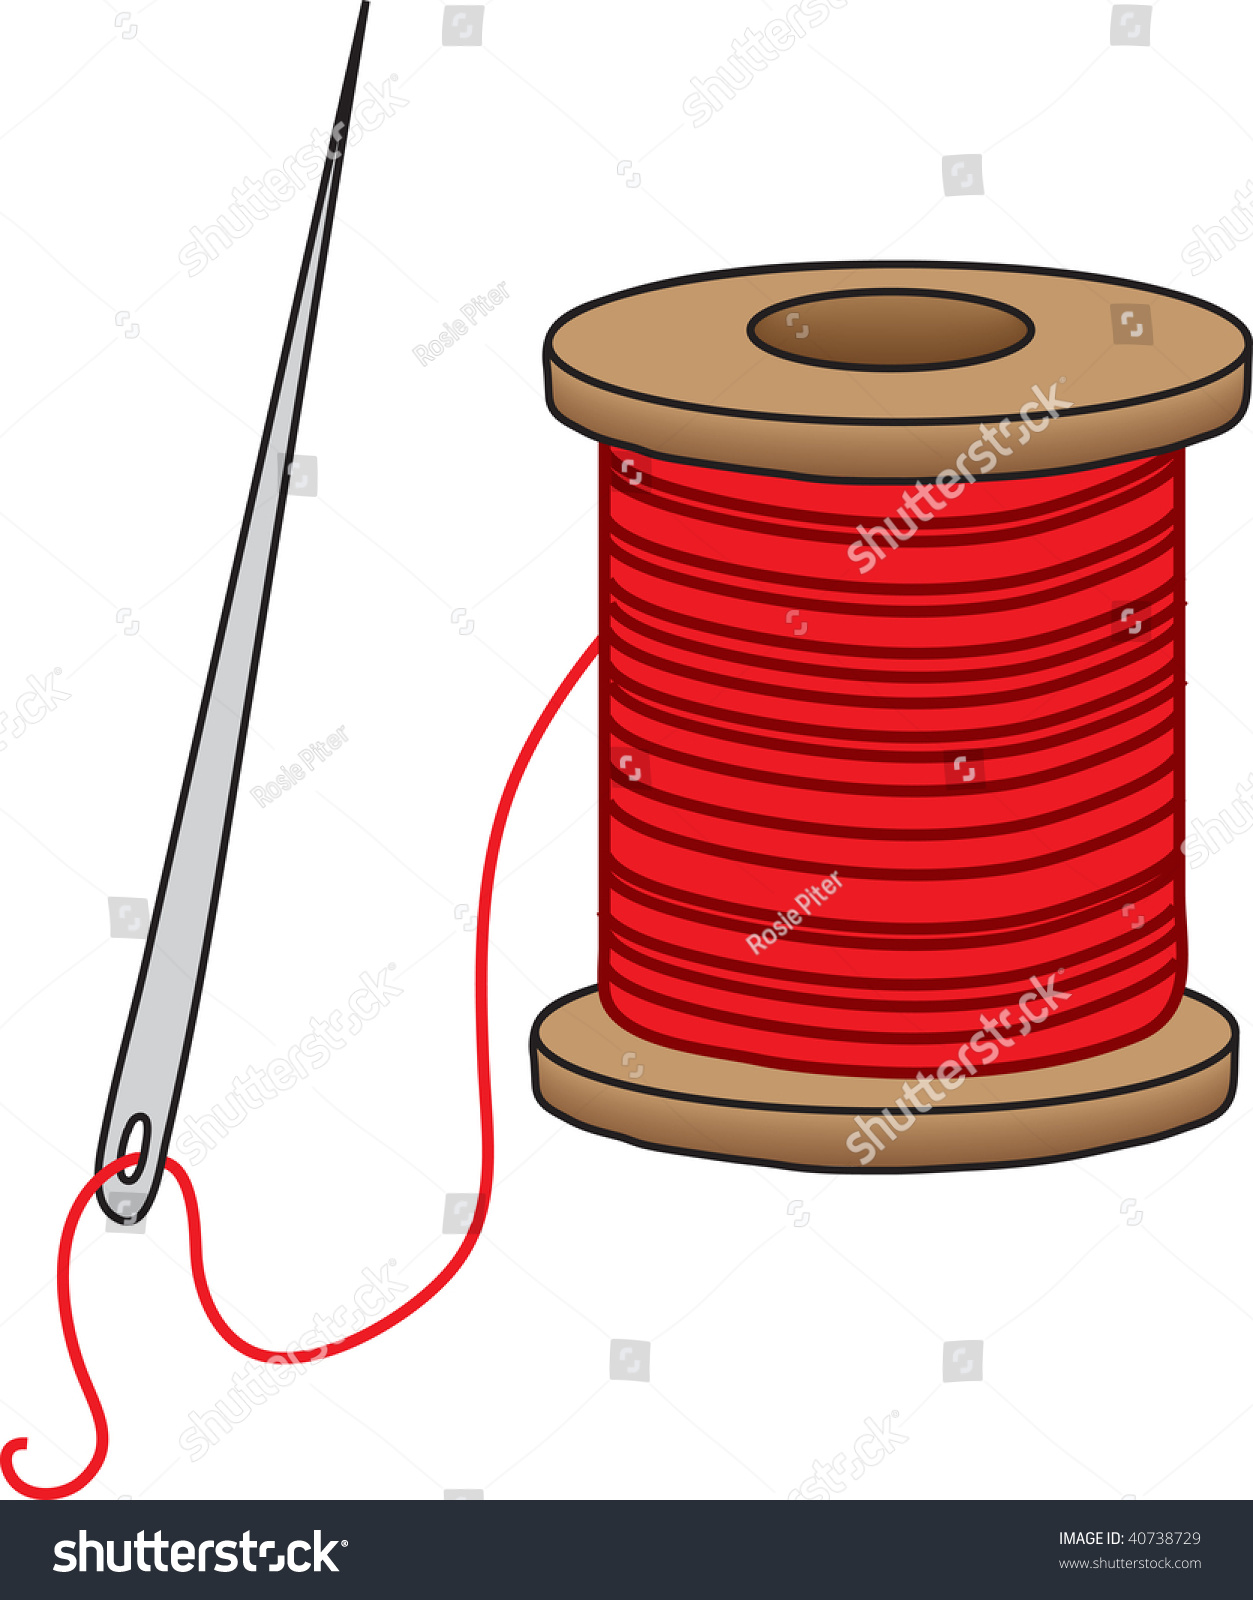 Clipart Illustration Sewing Needle Spool Red Stock Illustration ...